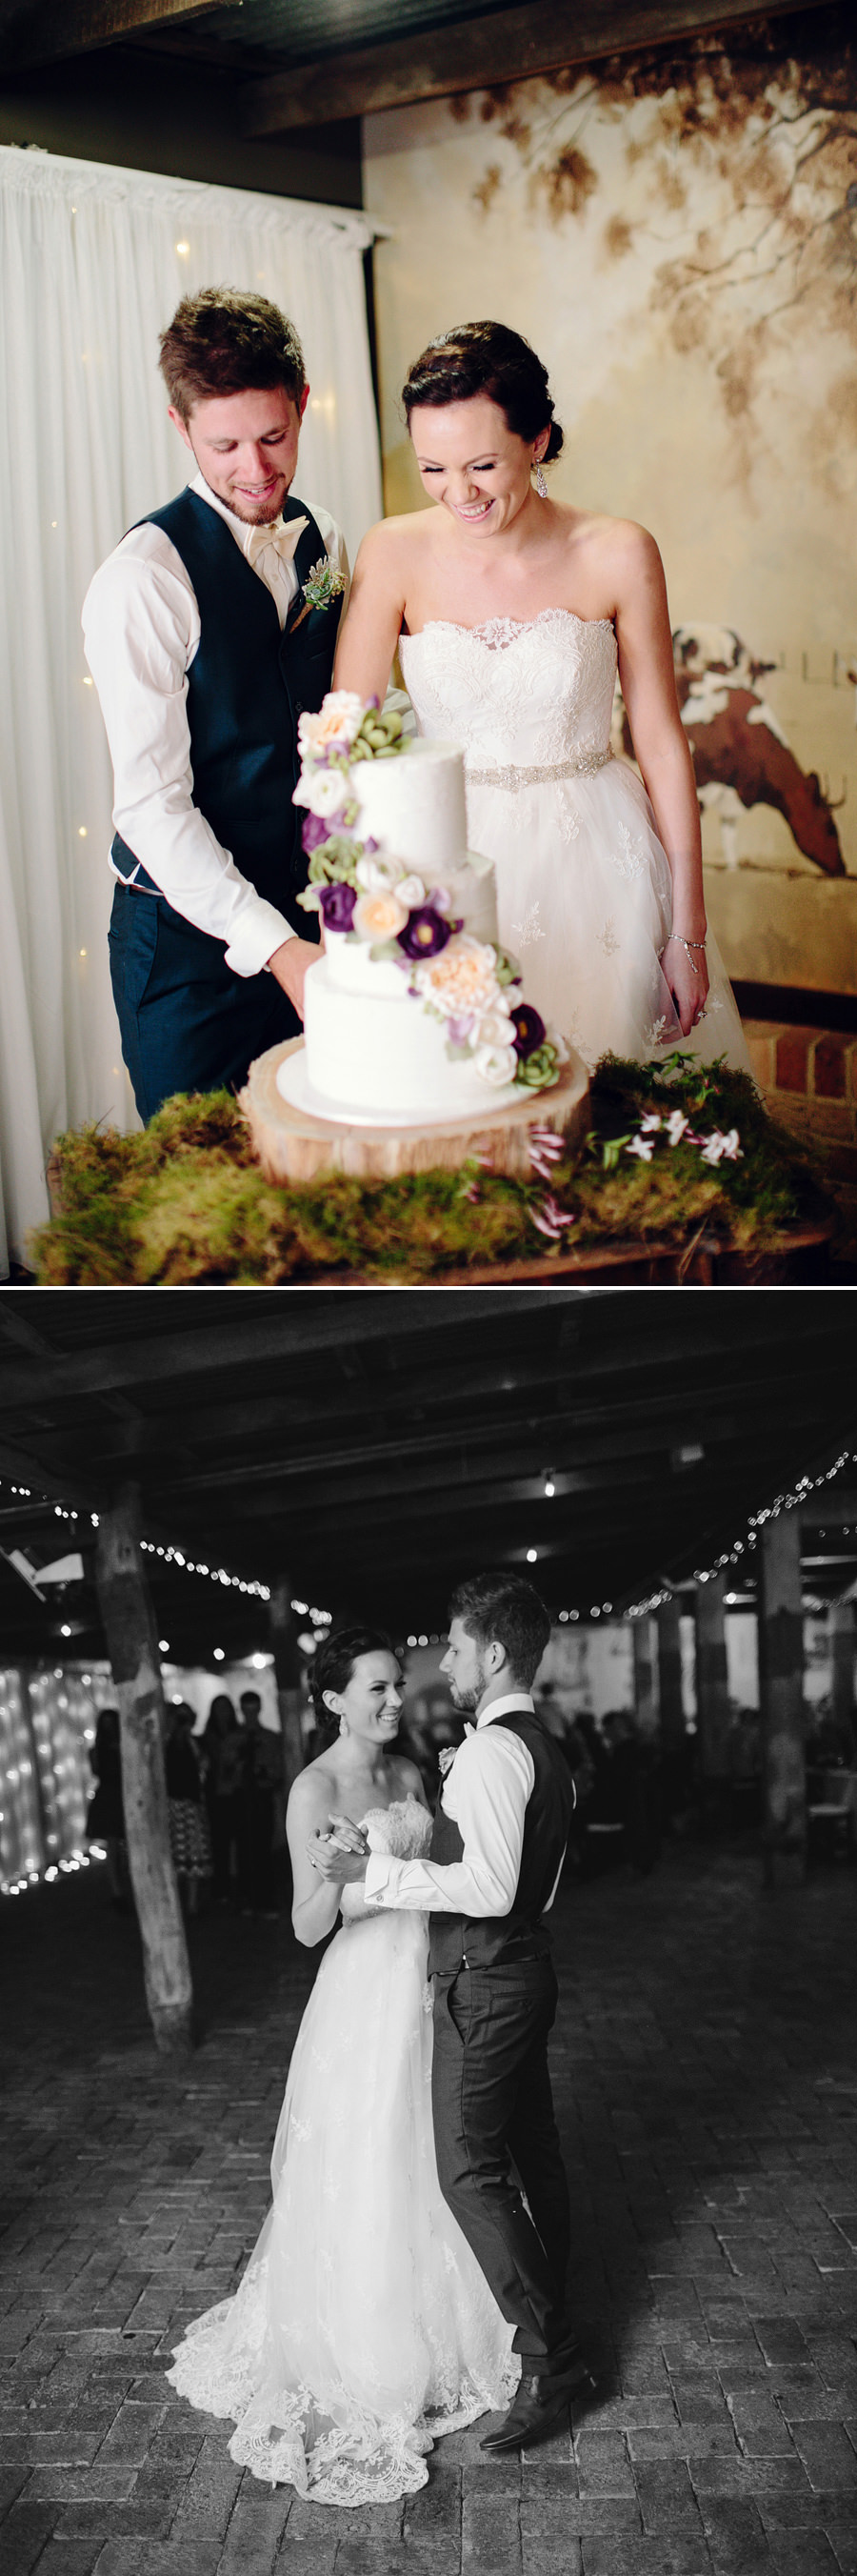 Modern Wedding Photography: Cake cutting & first dance